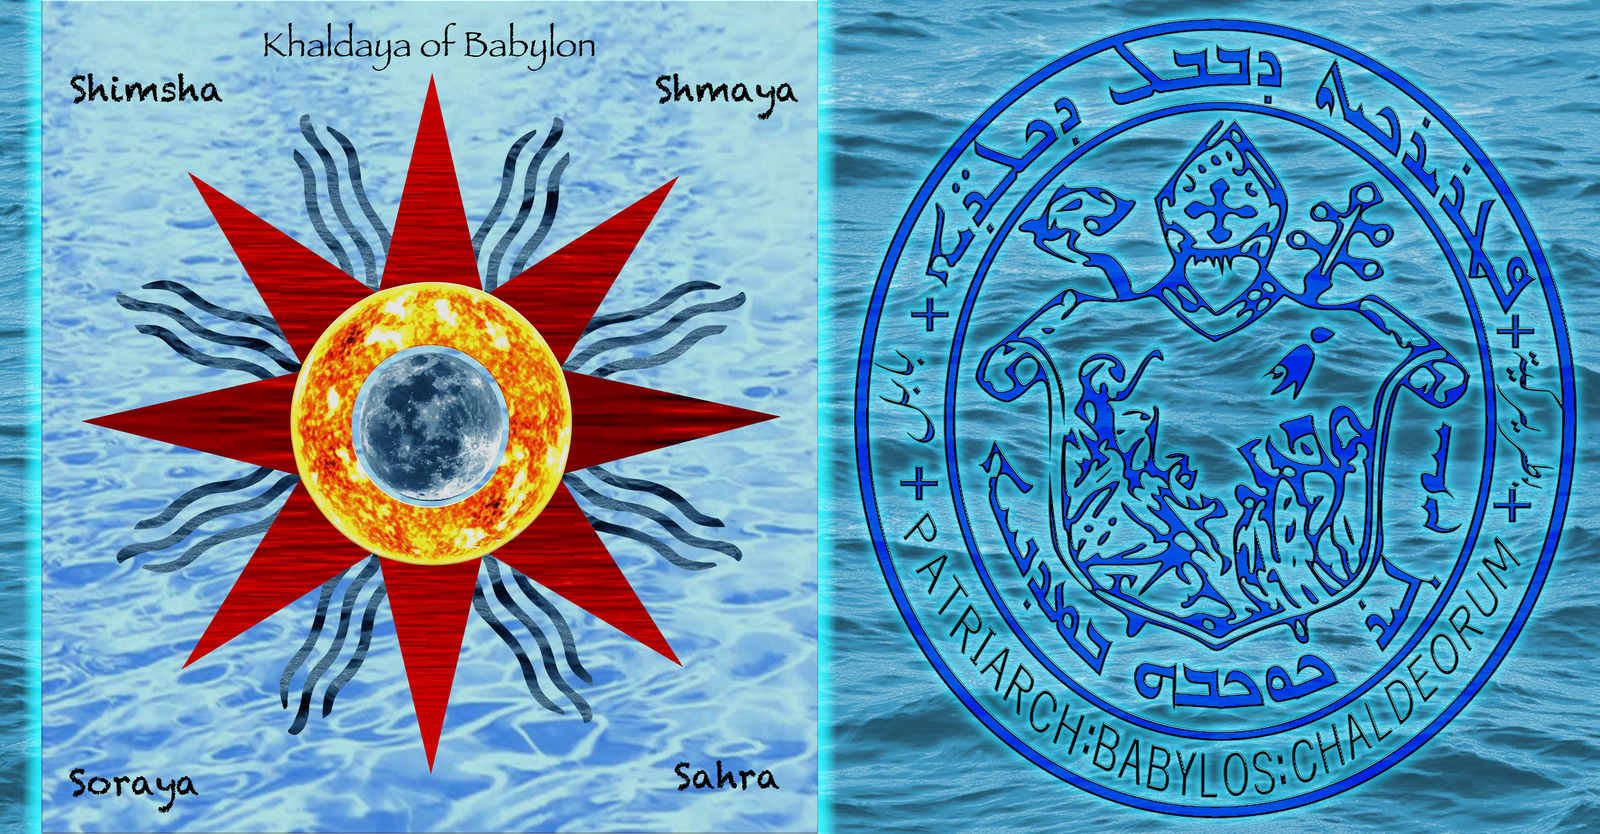 Chaldean Flag by malachim975310 on DeviantArt